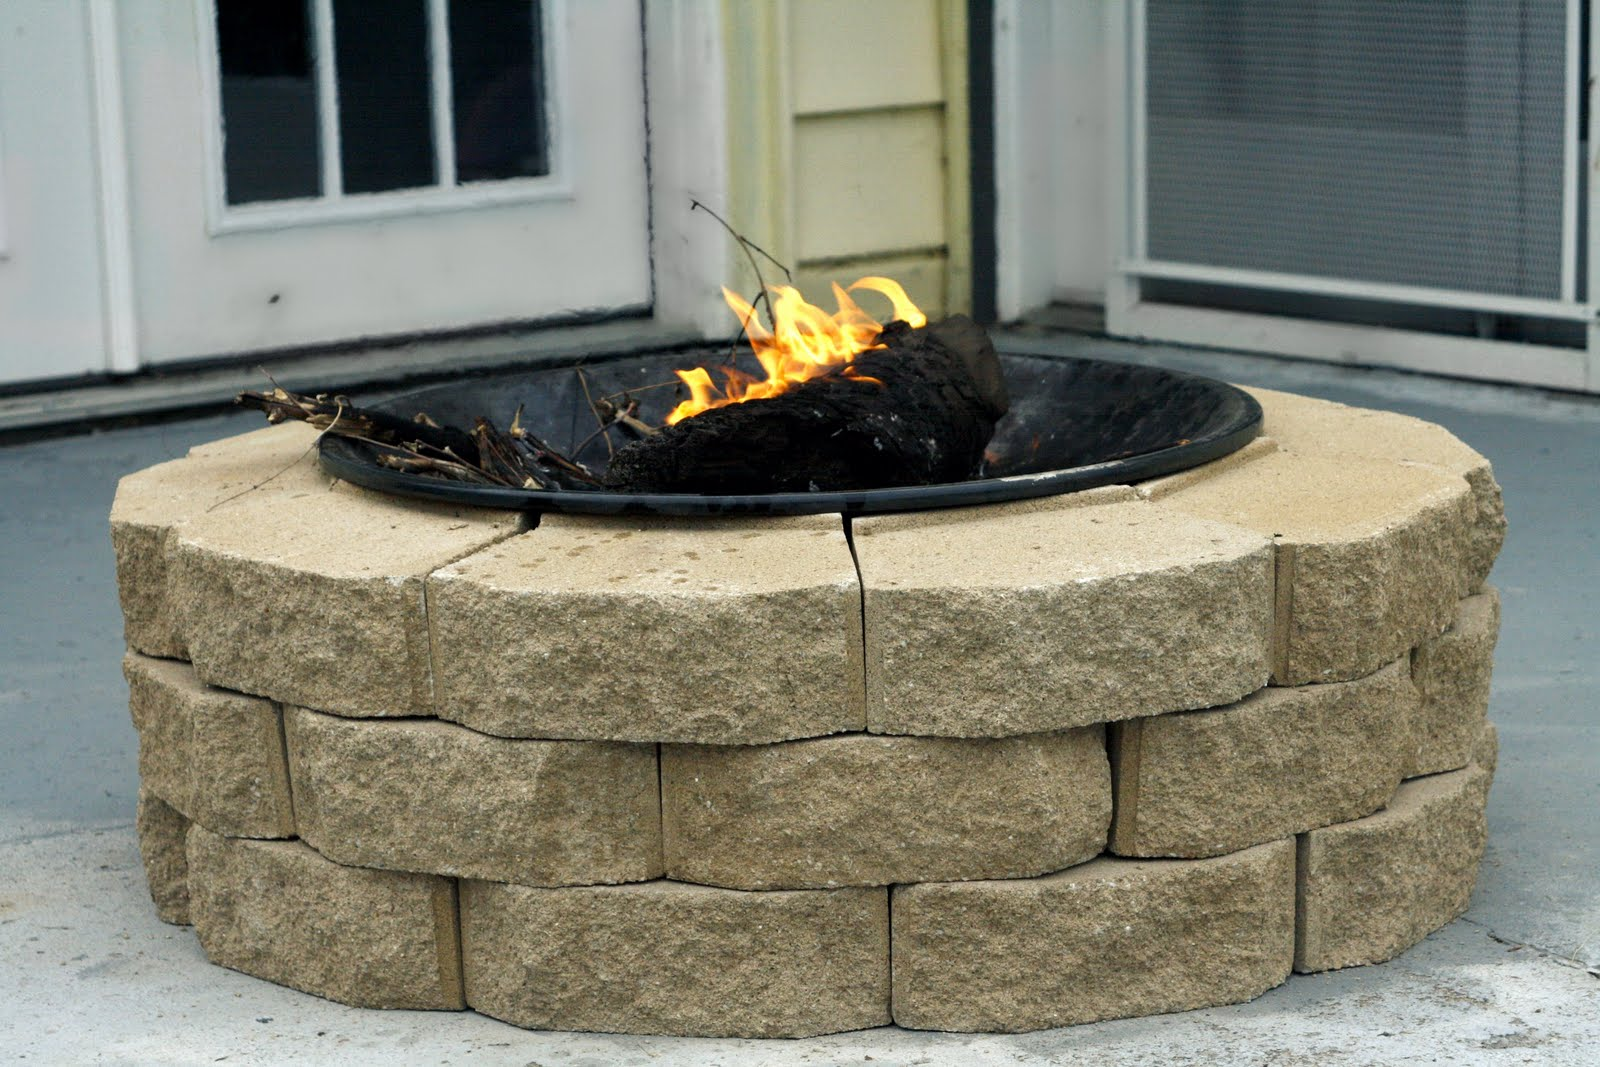 Always chasing life diy fire pit for Cheap easy fire pit ideas